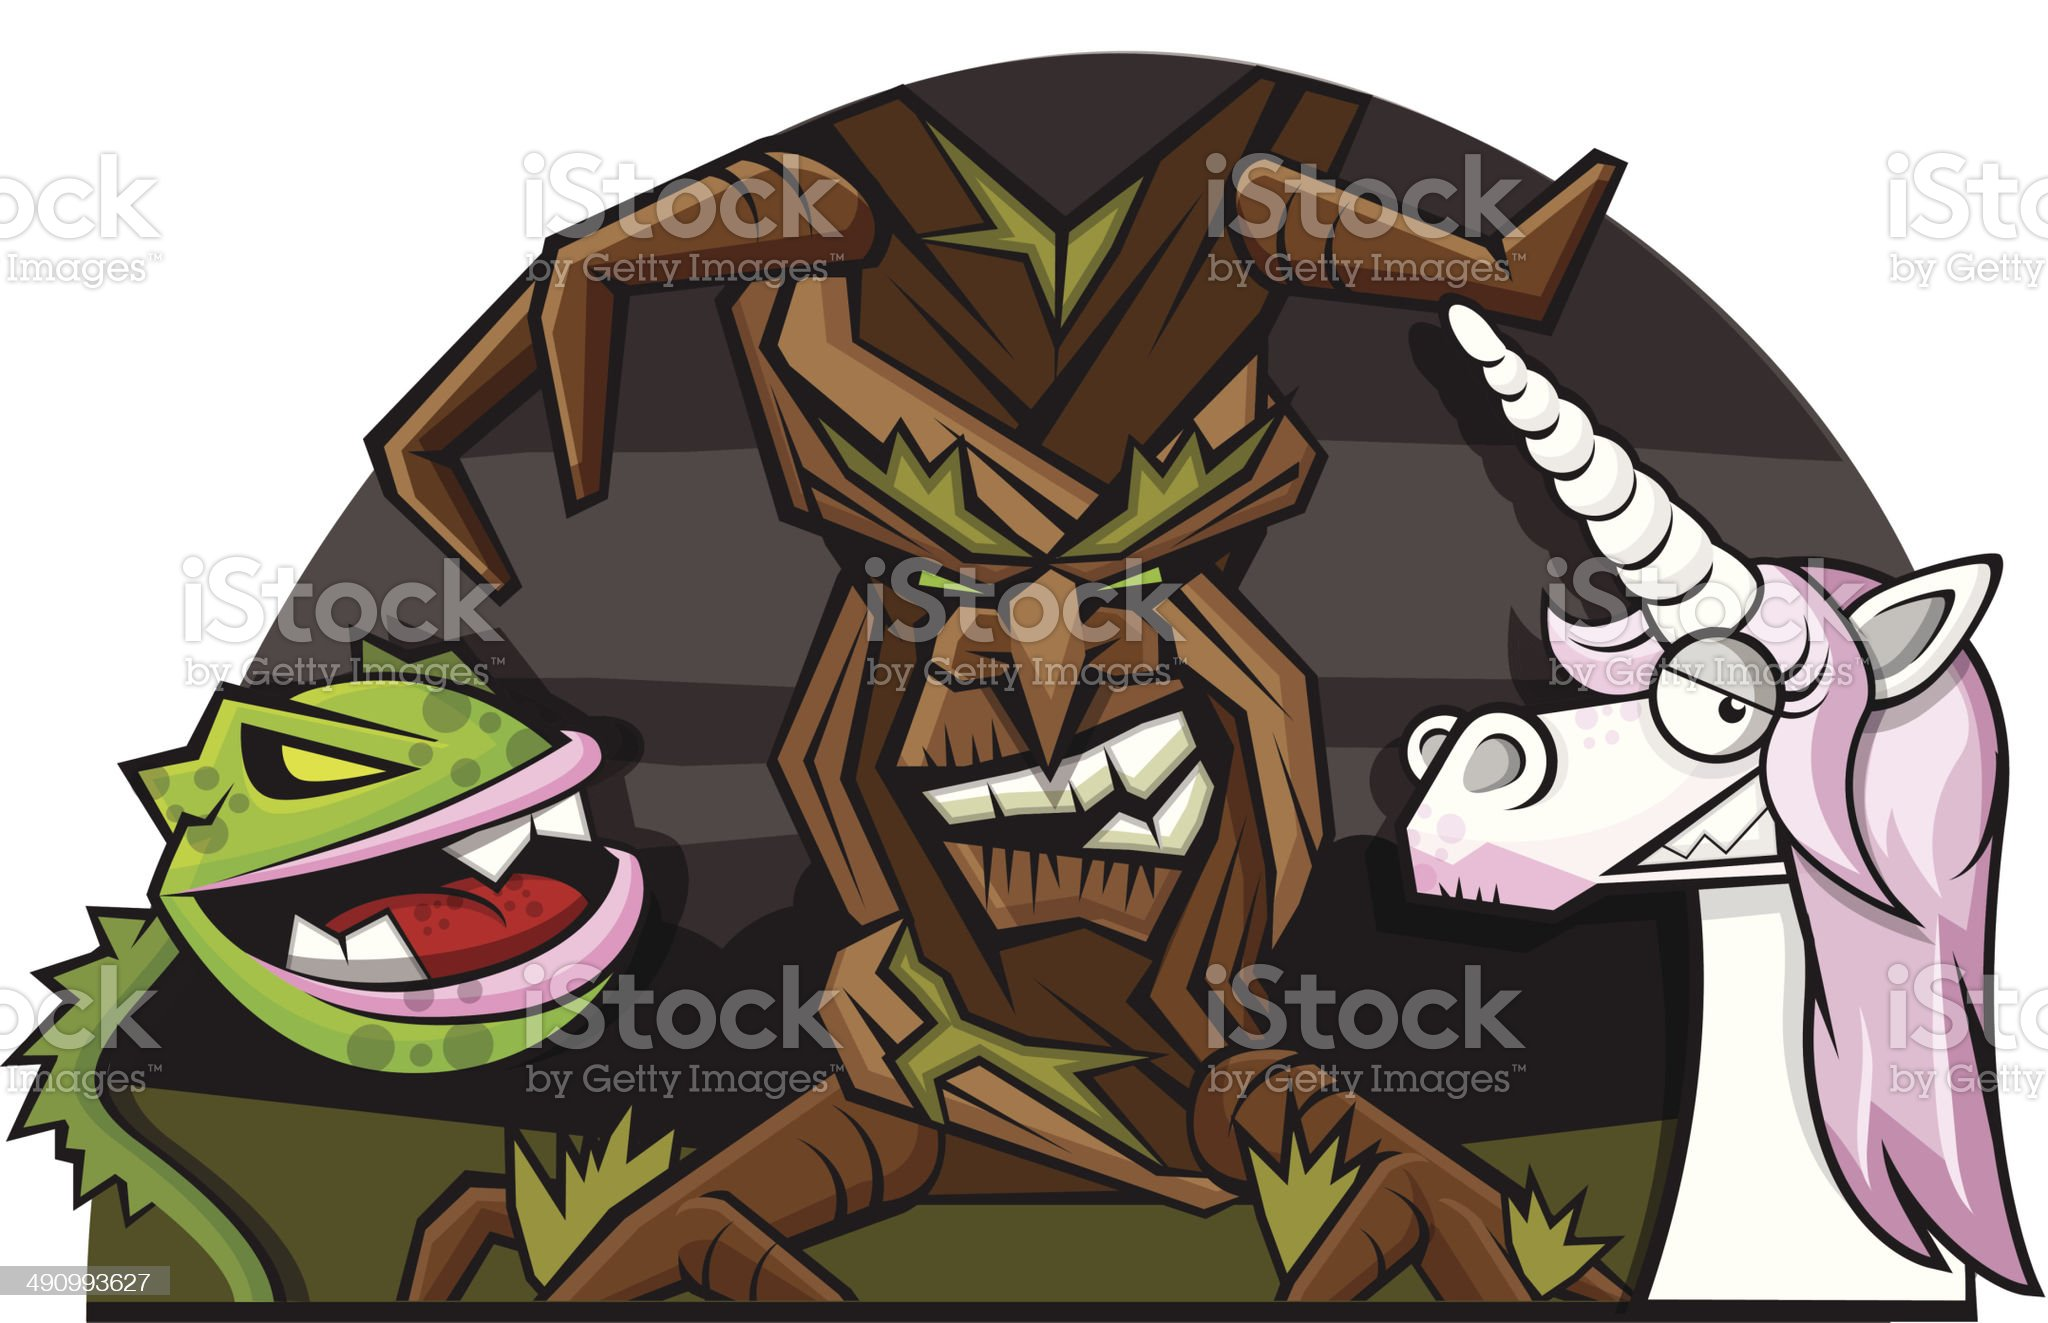 Mystical Forest royalty-free stock vector art